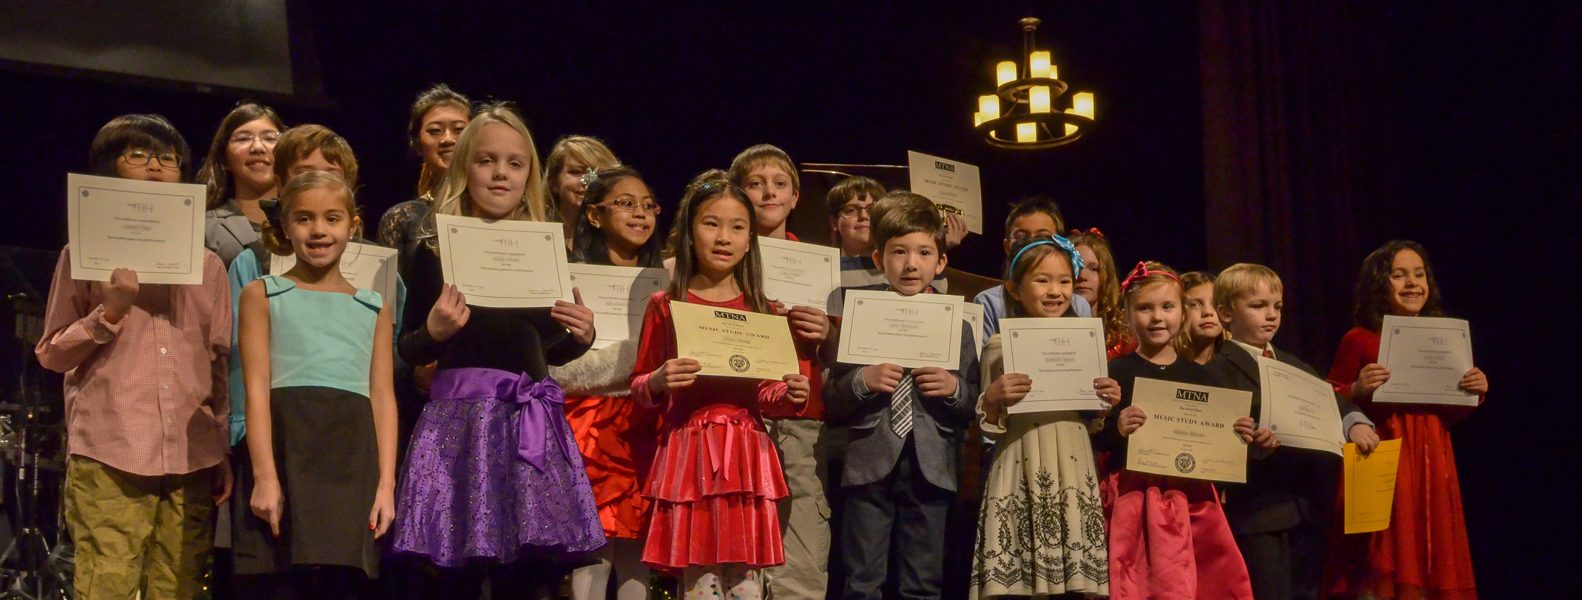 Twenty plus The Art of Piano students line up with their certificates after the 2014 Winter recital